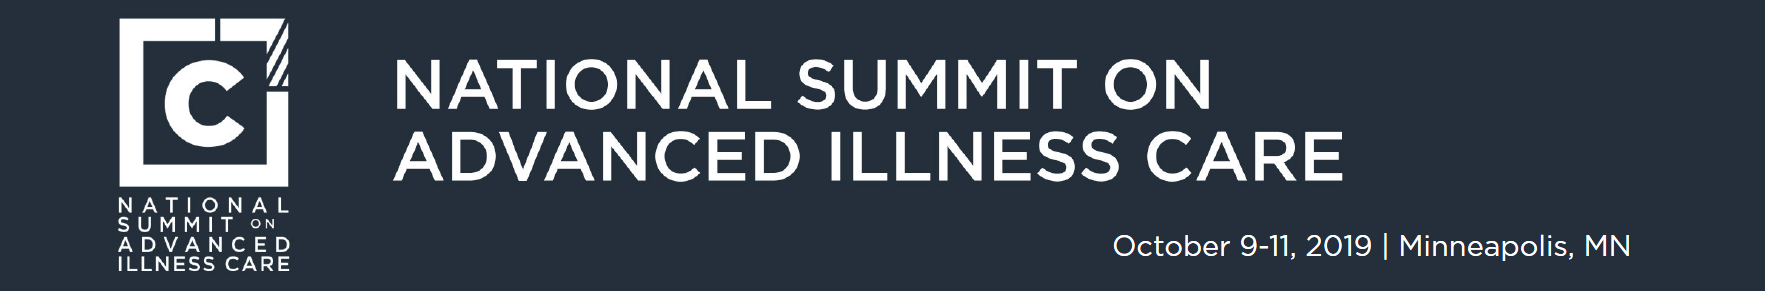 2019 National Summit on Advanced Illness Care